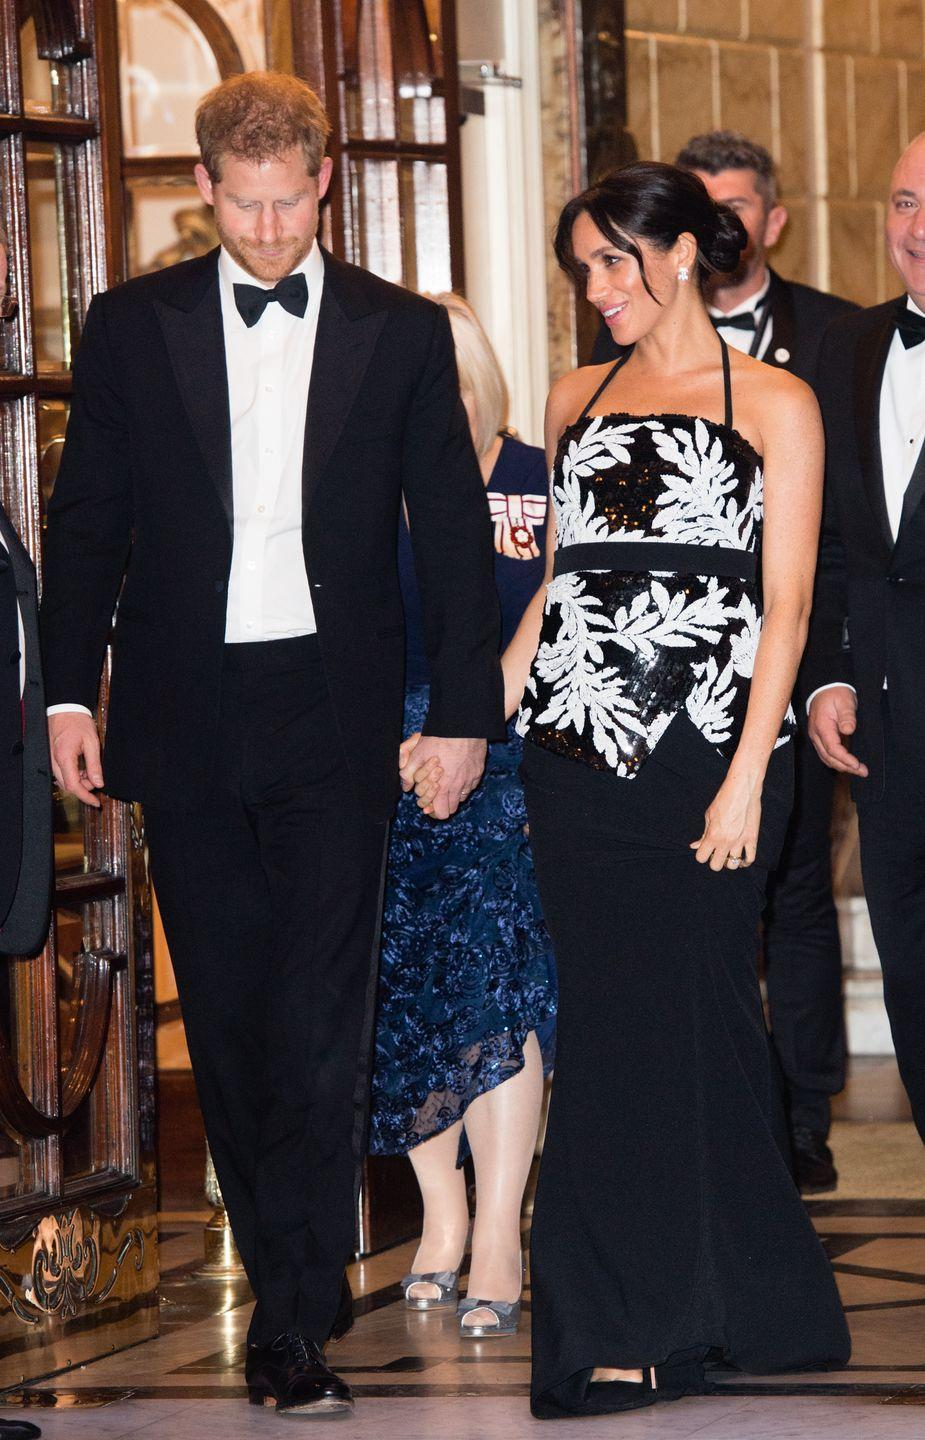 <p>Harry and Meghan looked sharp in black tie as they attended the Royal Variety Performance at London Palladium. </p>